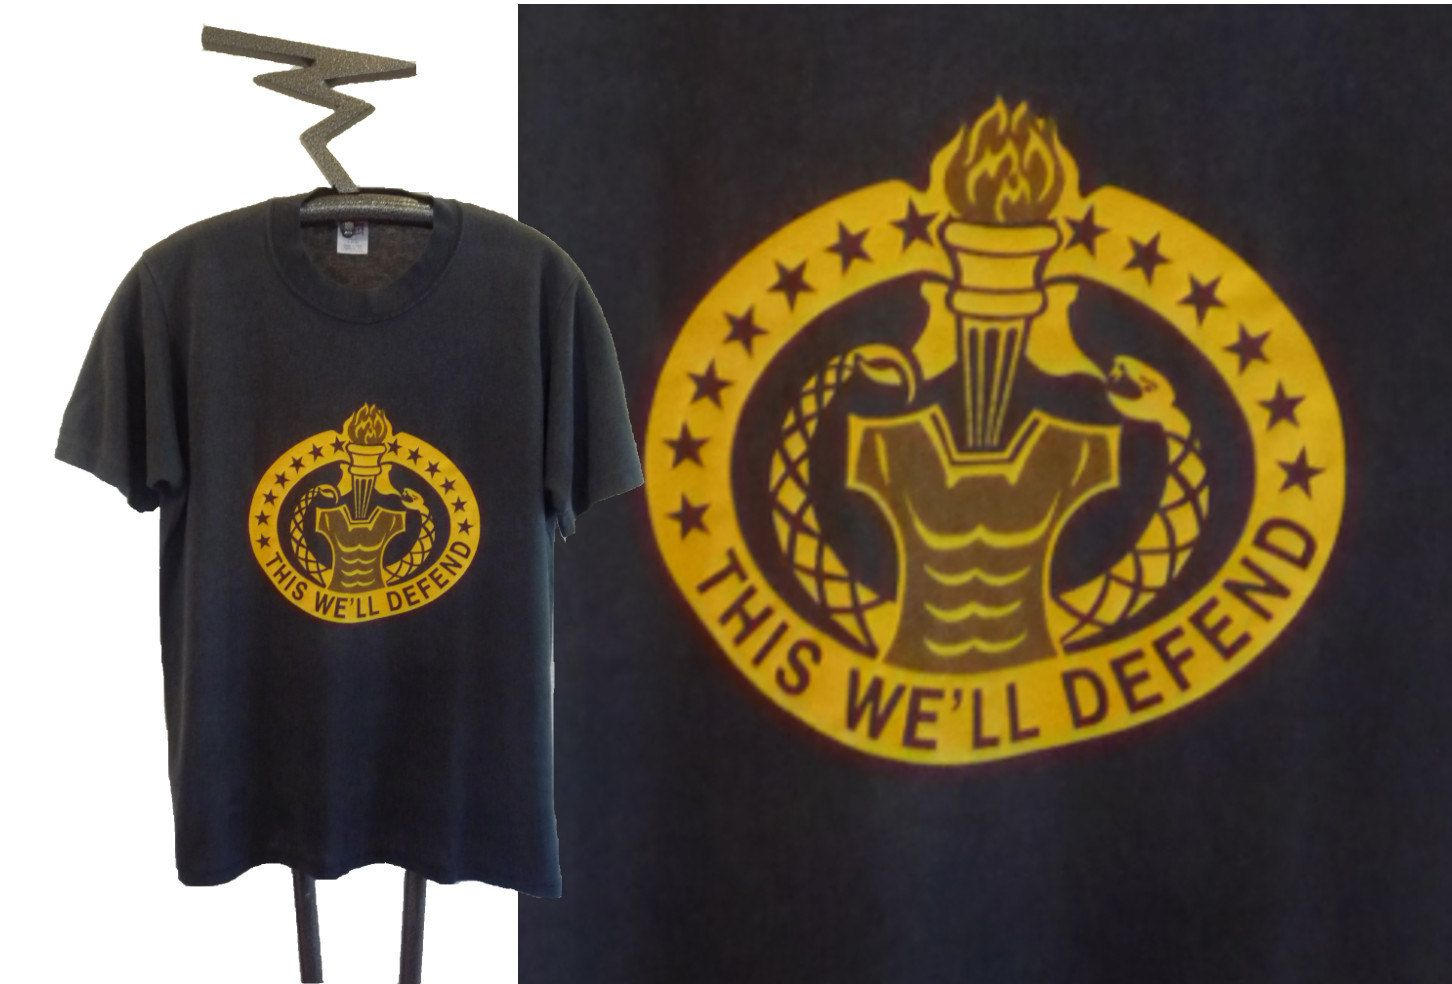 80 S United States Army This We Ll Defend Military Tee